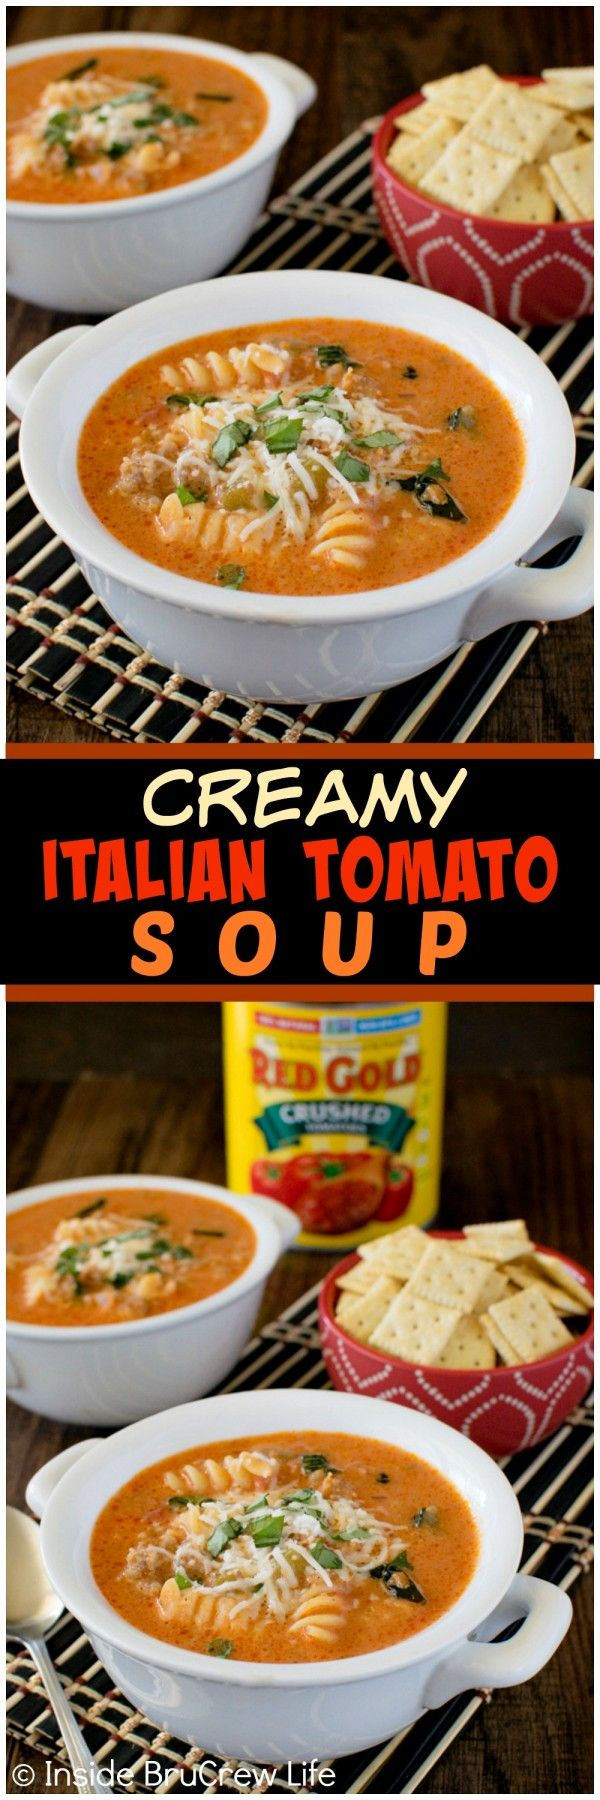 ... Sandy's Favorite Soups on Pinterest | Stew, Bacon and Soup recipes